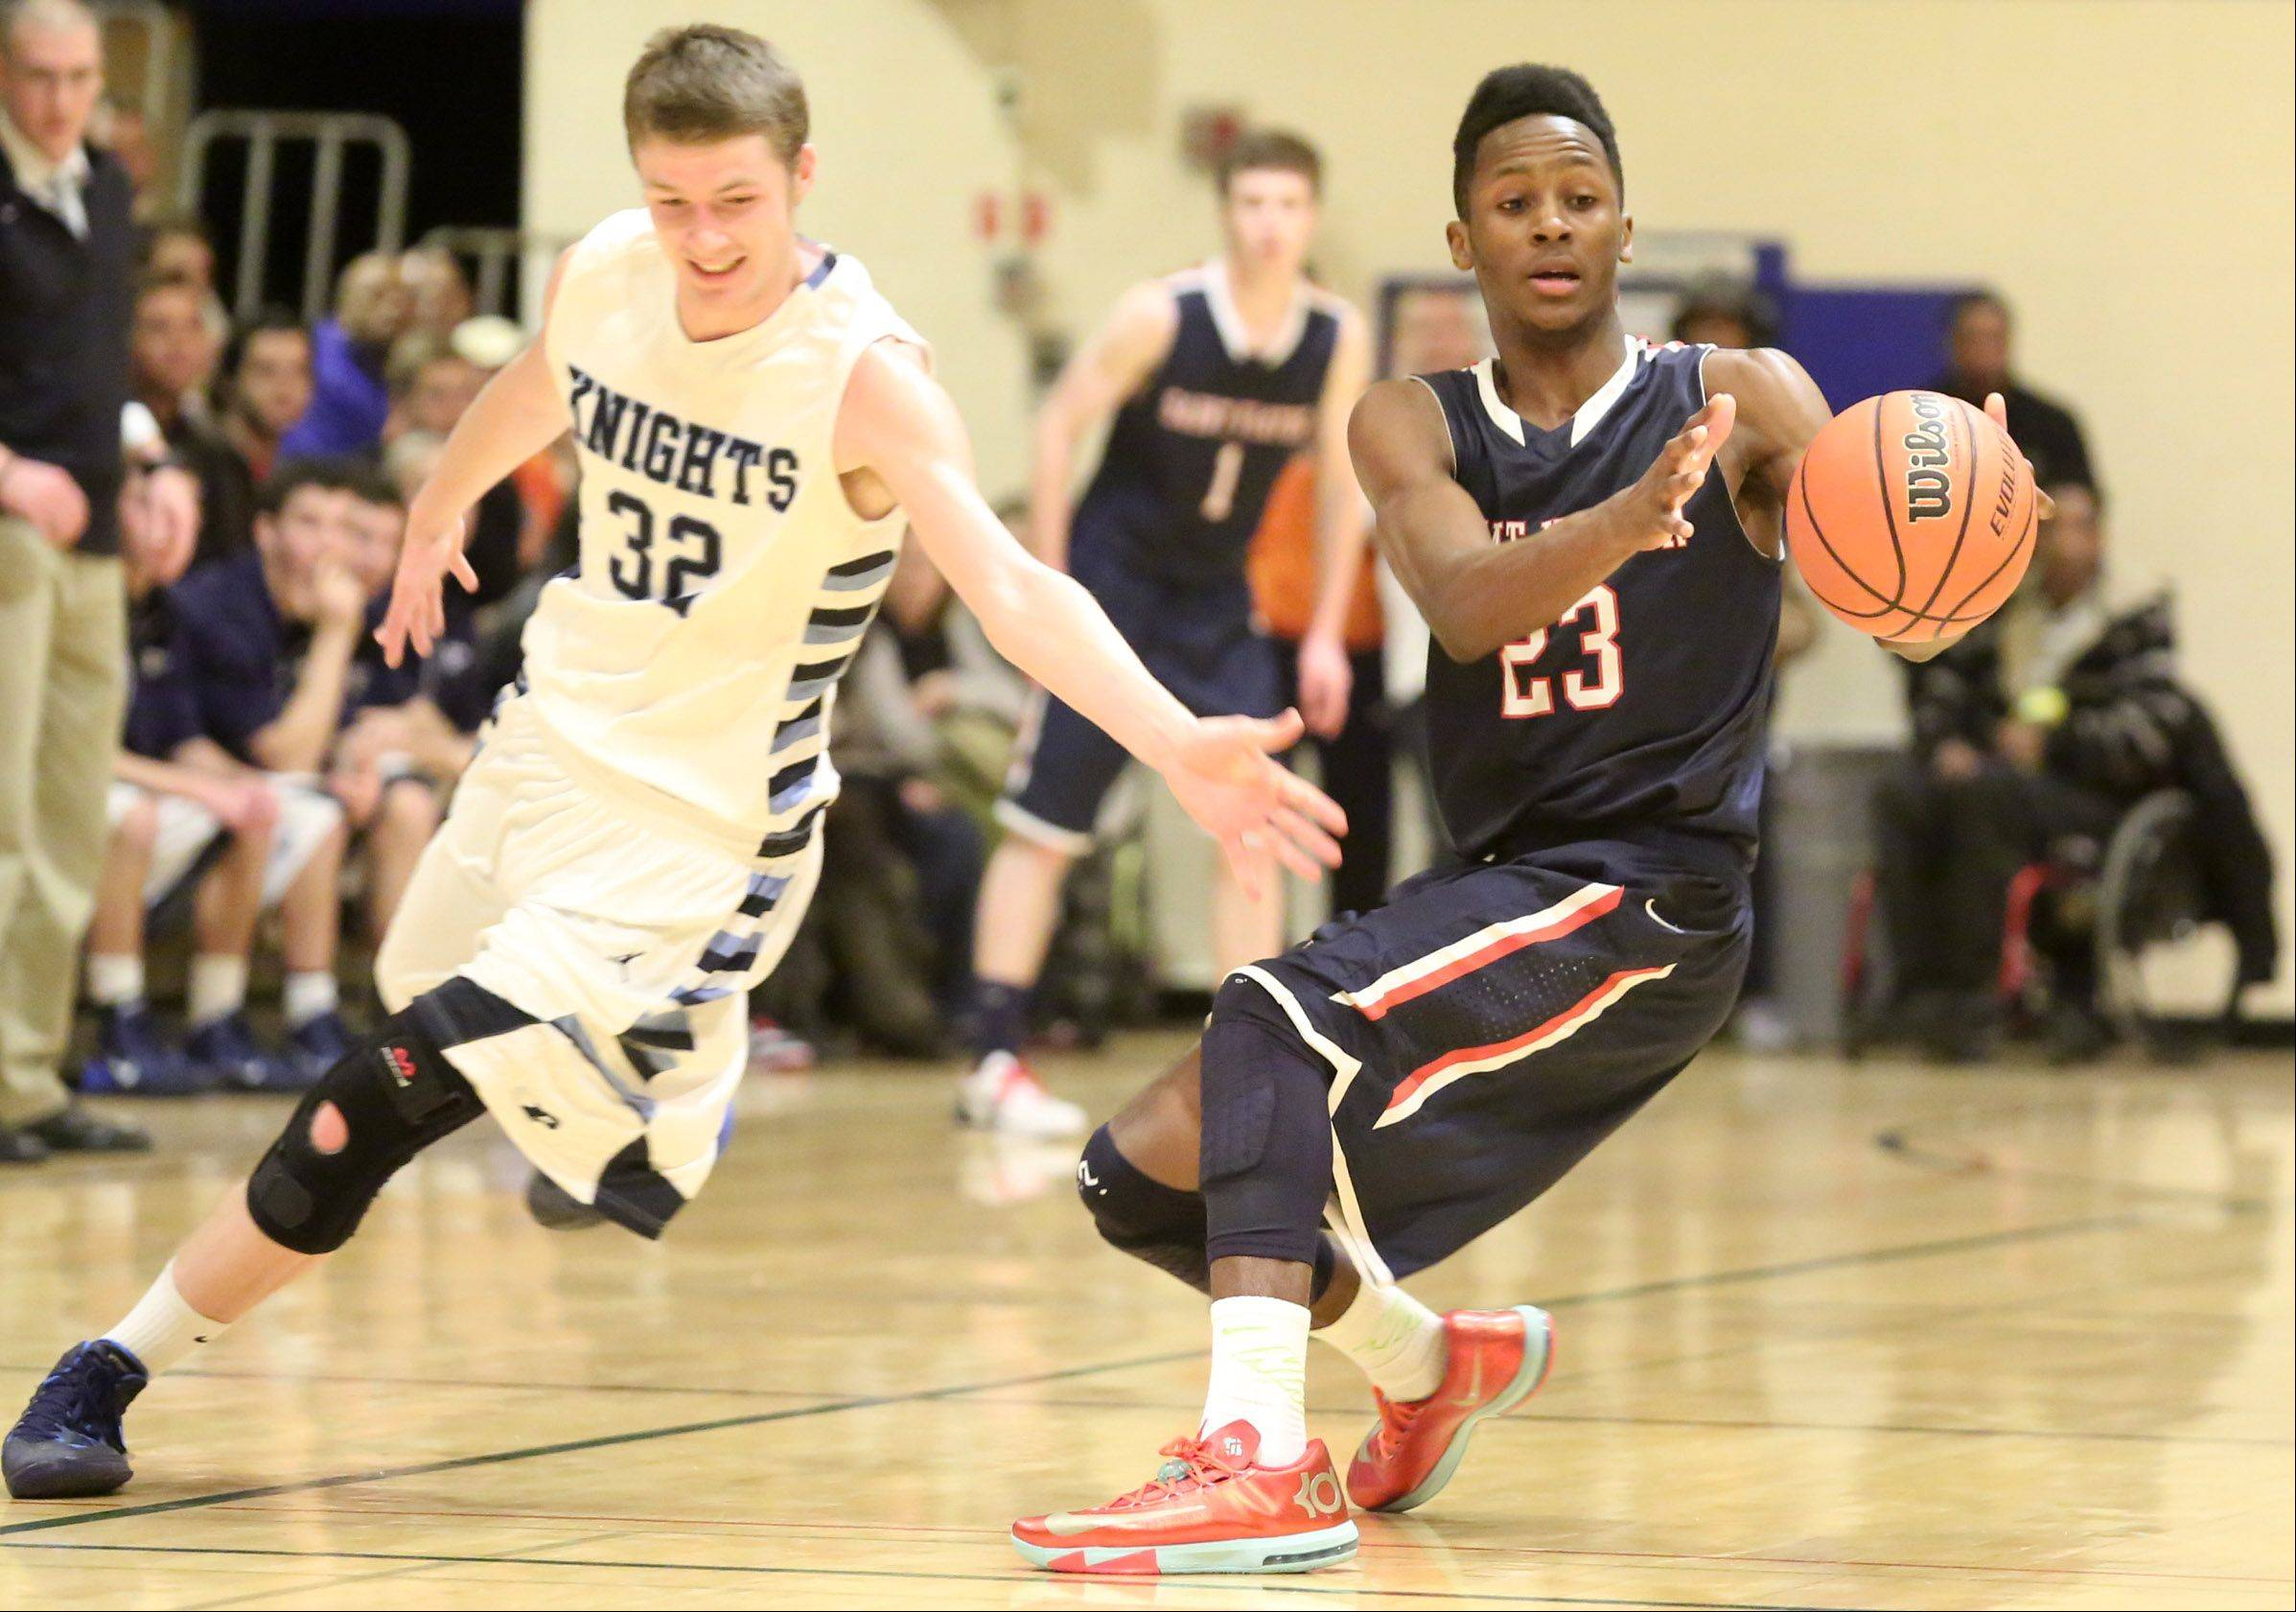 St. Viator guard Ore Arogundade pulls in a pass before Prospect defender Danny Thomas can step in at the Wheeling Hardwood Classic on Friday in Wheeling.